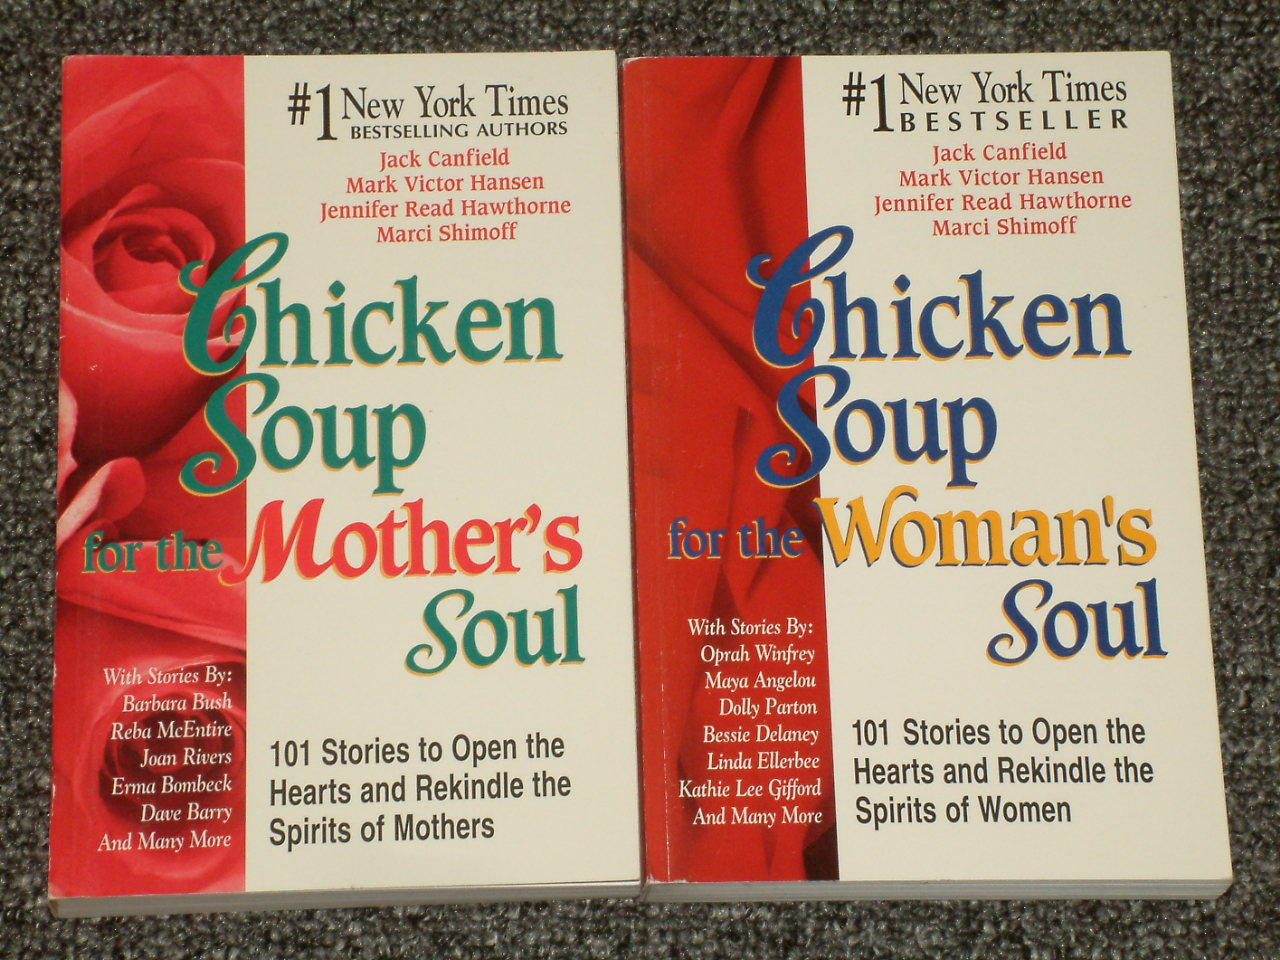 Chicken Soup for the Woman's Soul and for the Mother's Soul